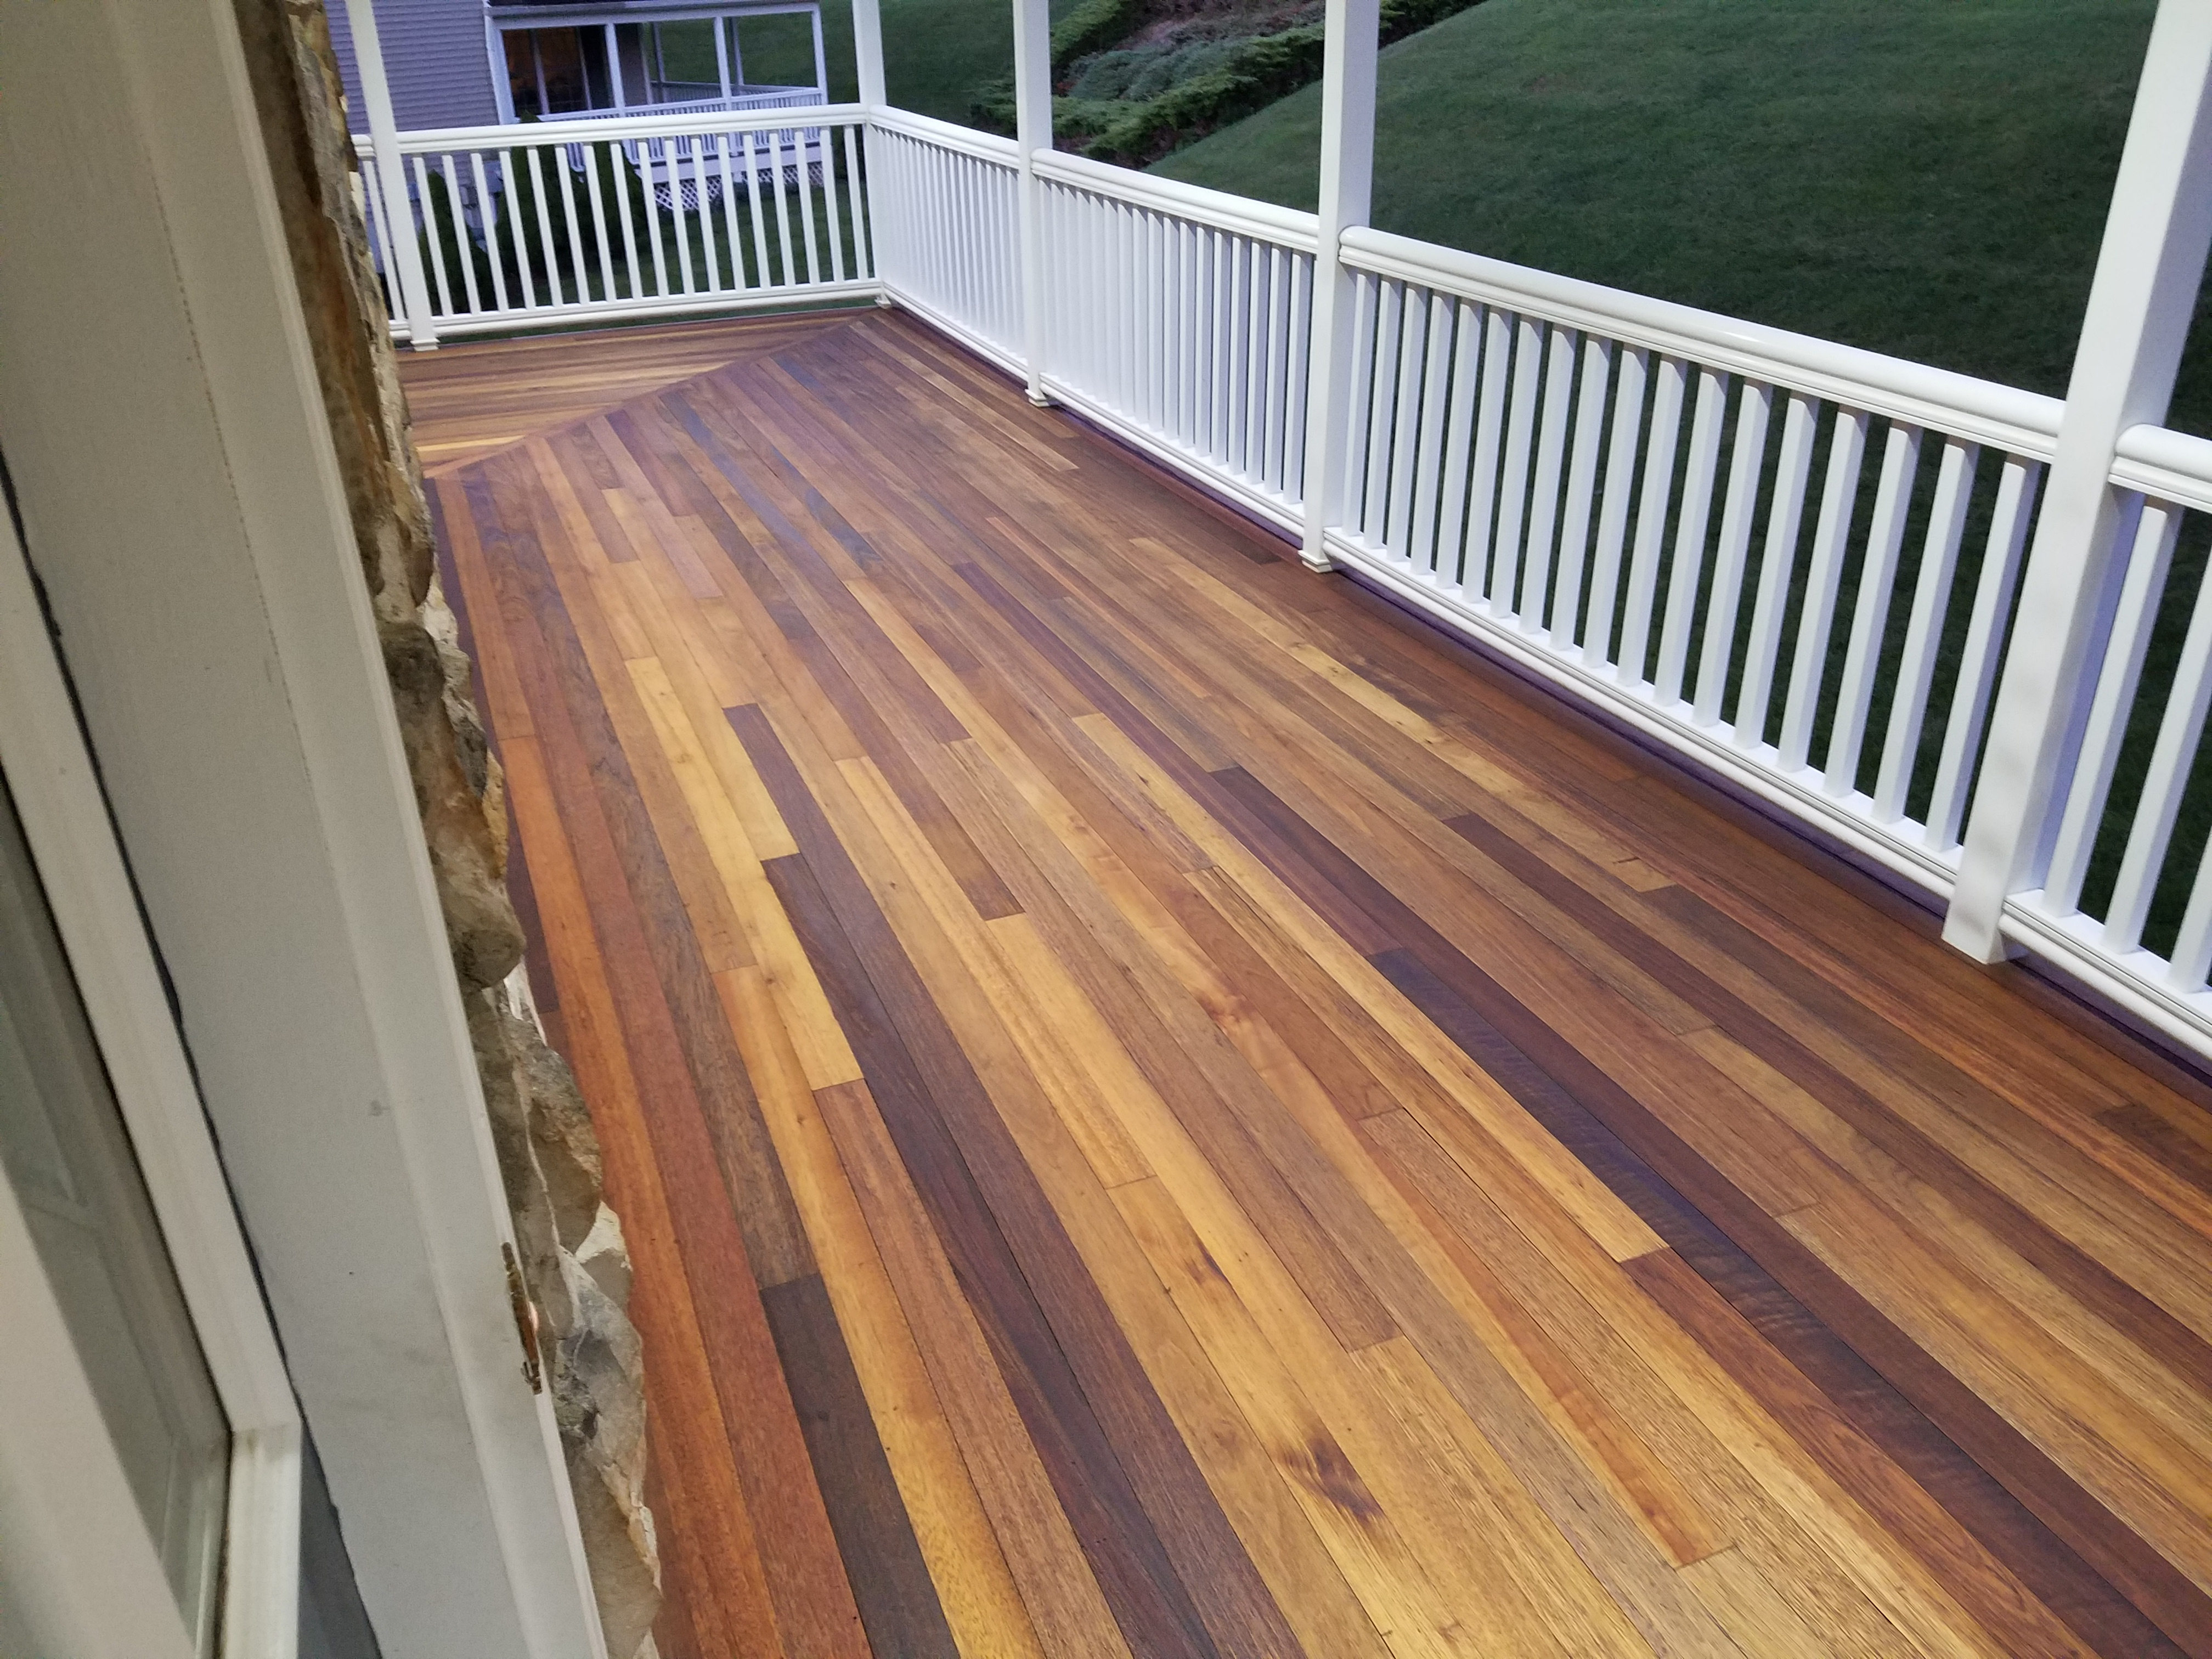 Finished Mahogany Porch With Penofin For Hardwood Deck Stain throughout size 4032 X 3024